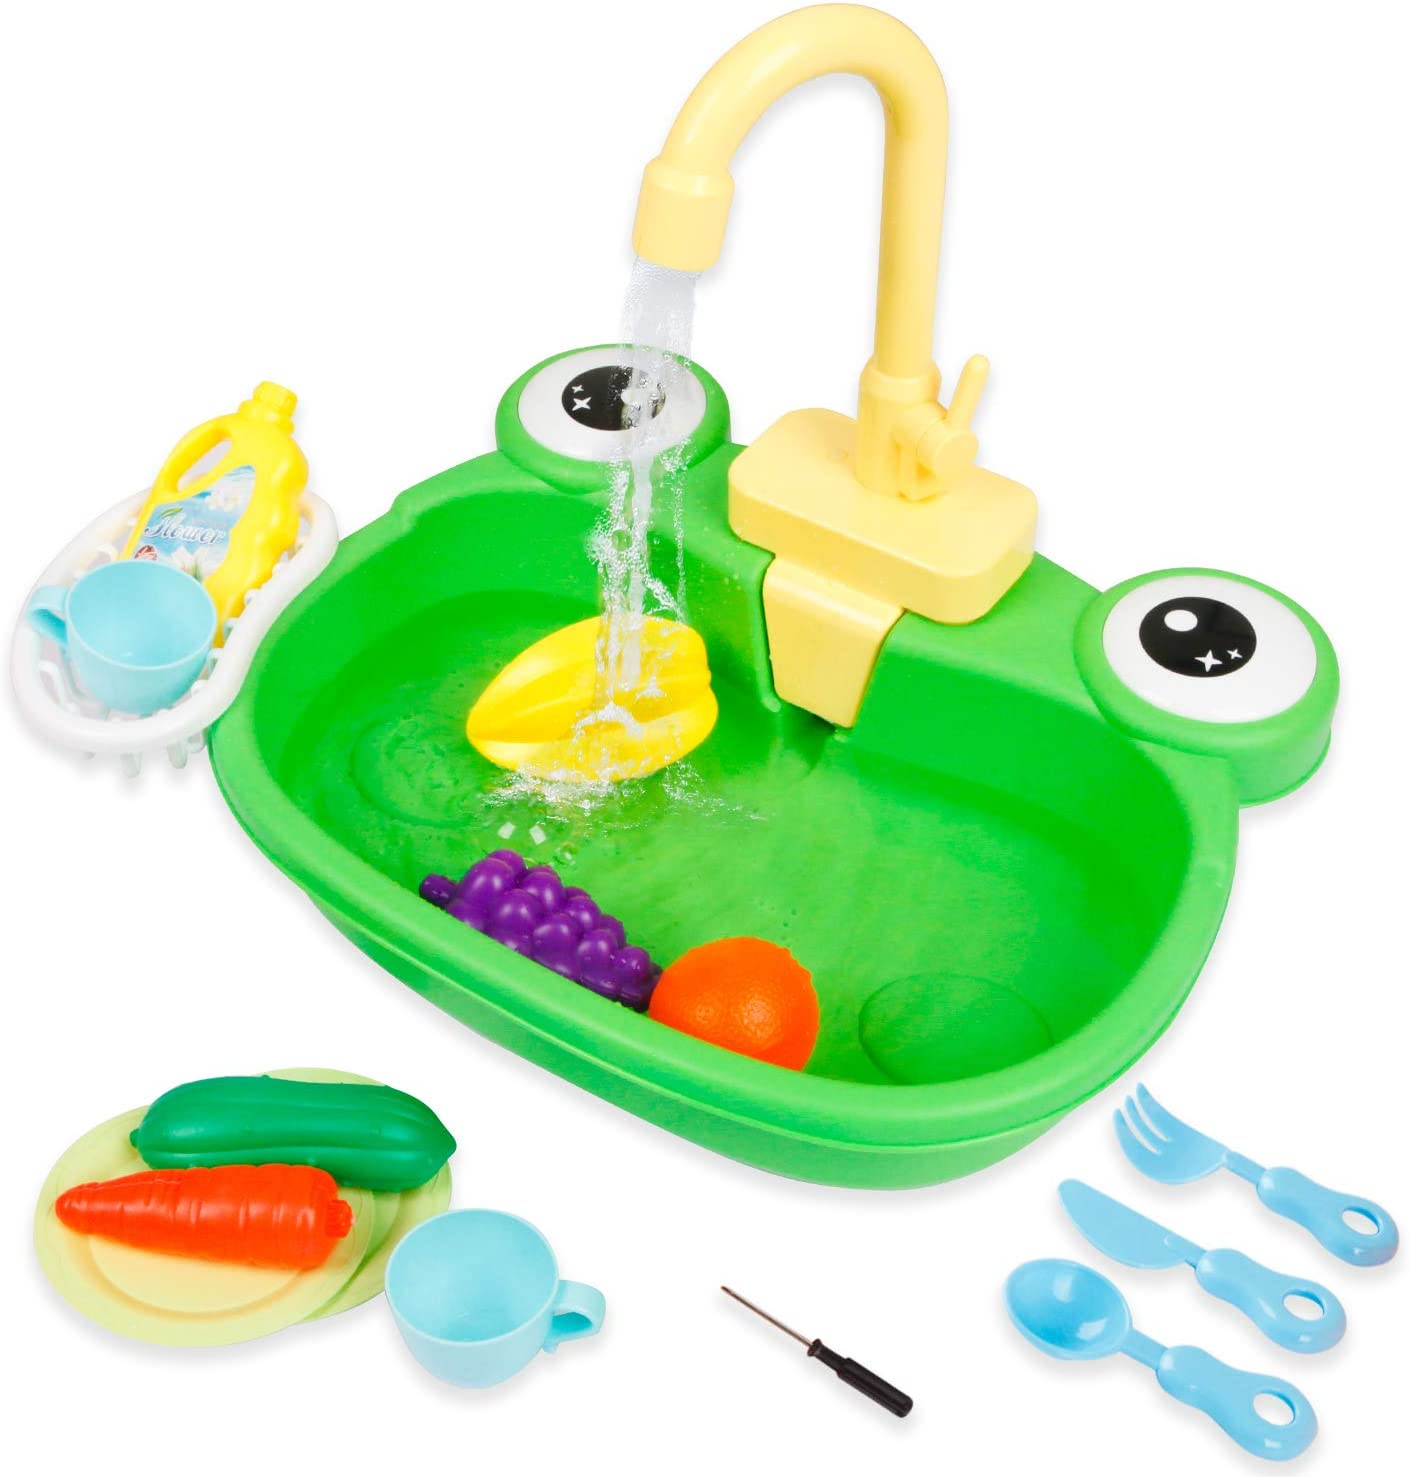 Ruibytree Play Kitchen Sink Toy, Water Toys for Kids with Electronic Dishwasher, Pretend Play Utensils Accessories and Play Cutting Food for Boys and Girls (Cute Frog)